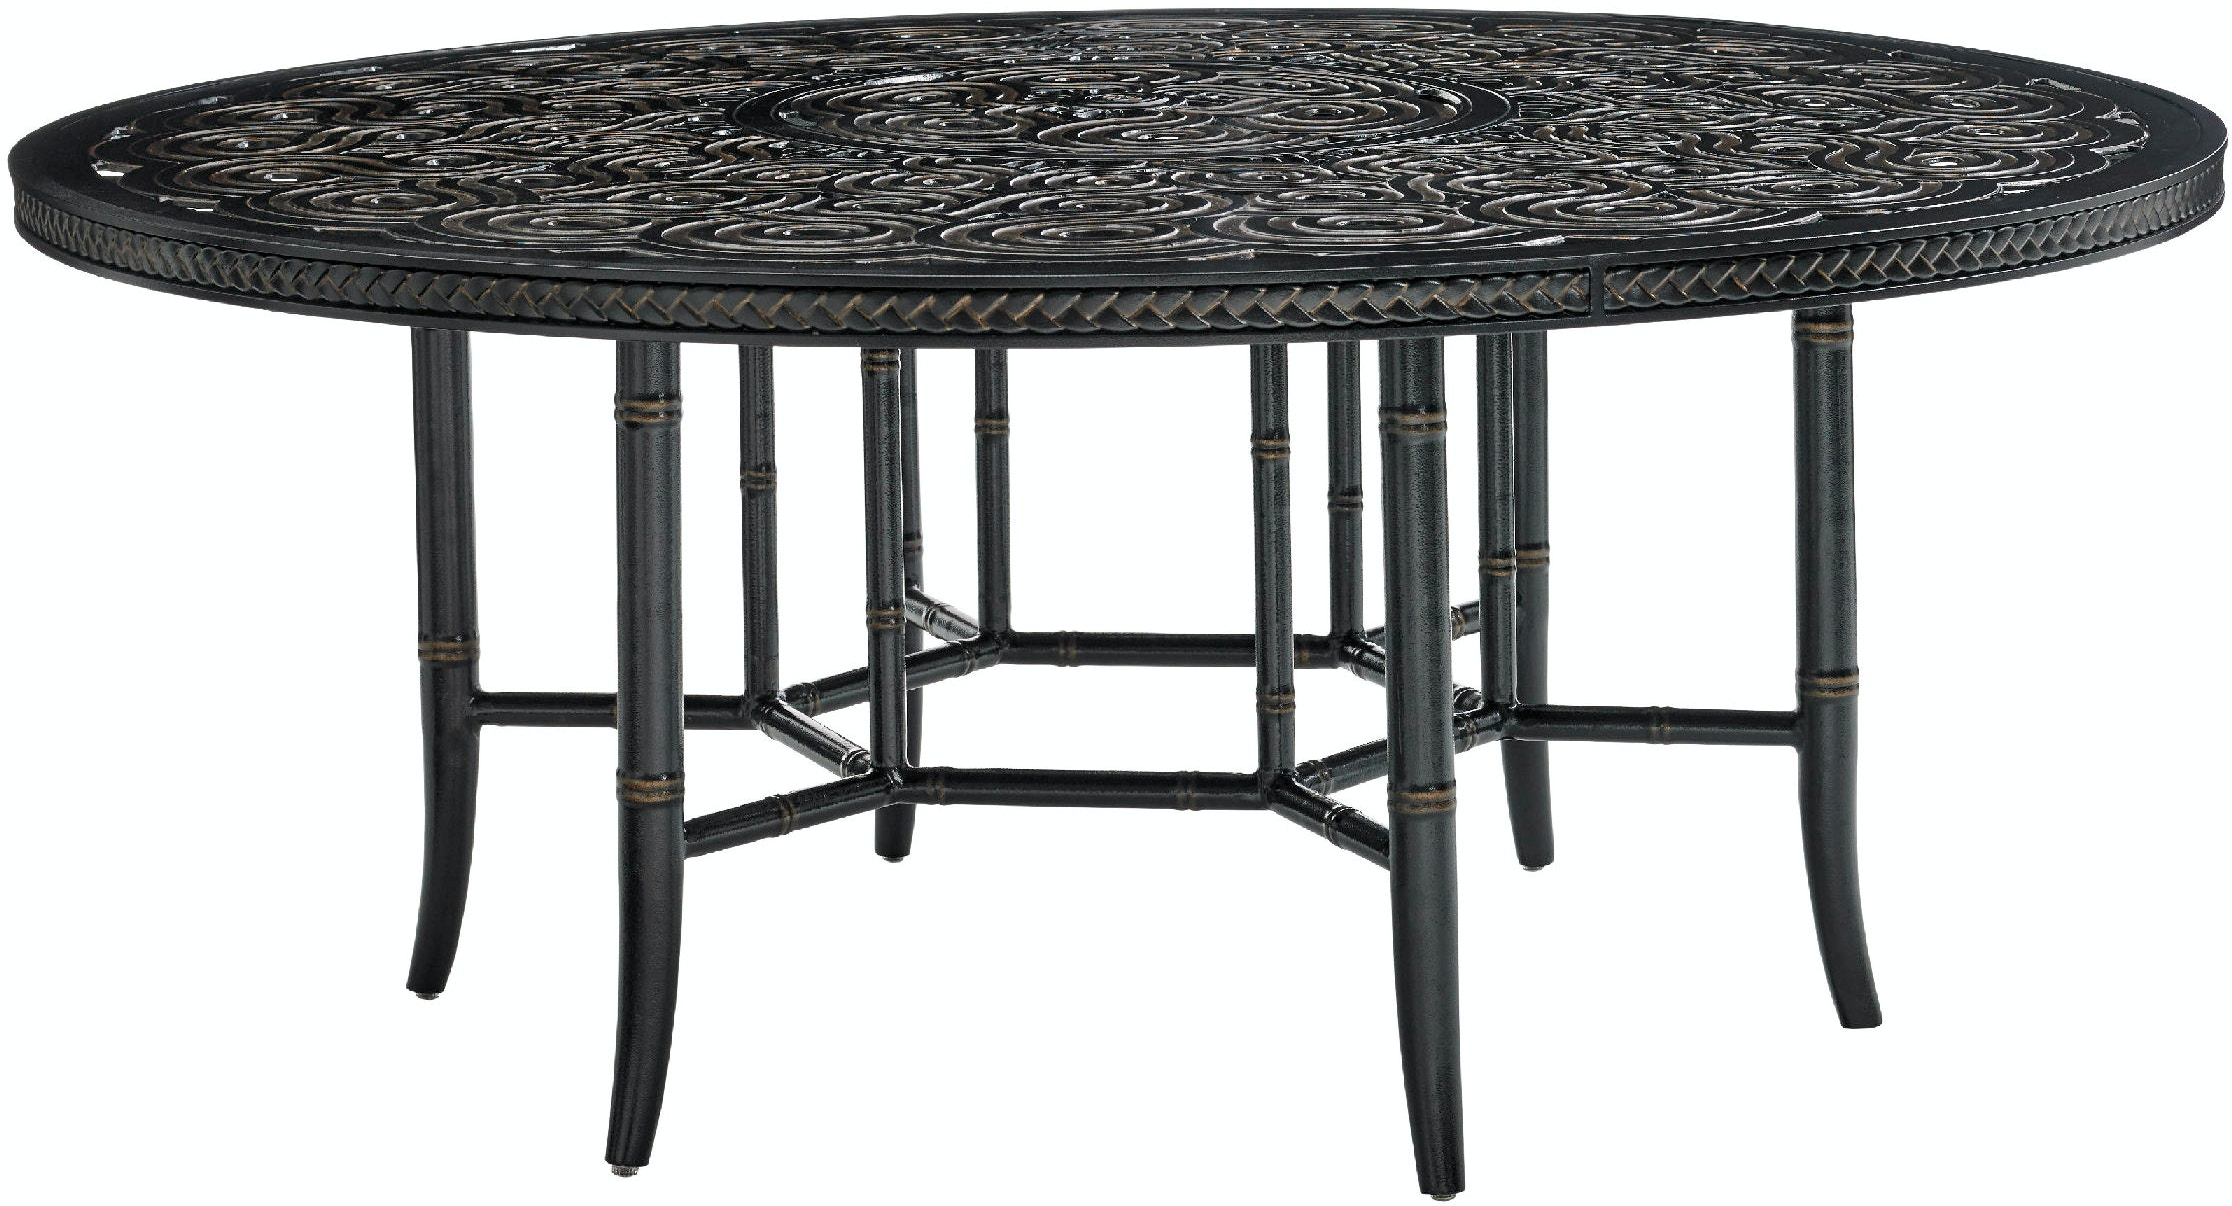 Tommy Bahama Outdoor Living Round Dining Table Base  : 3237875cttbsilo from www.fhcasual.com size 1024 x 768 jpeg 57kB